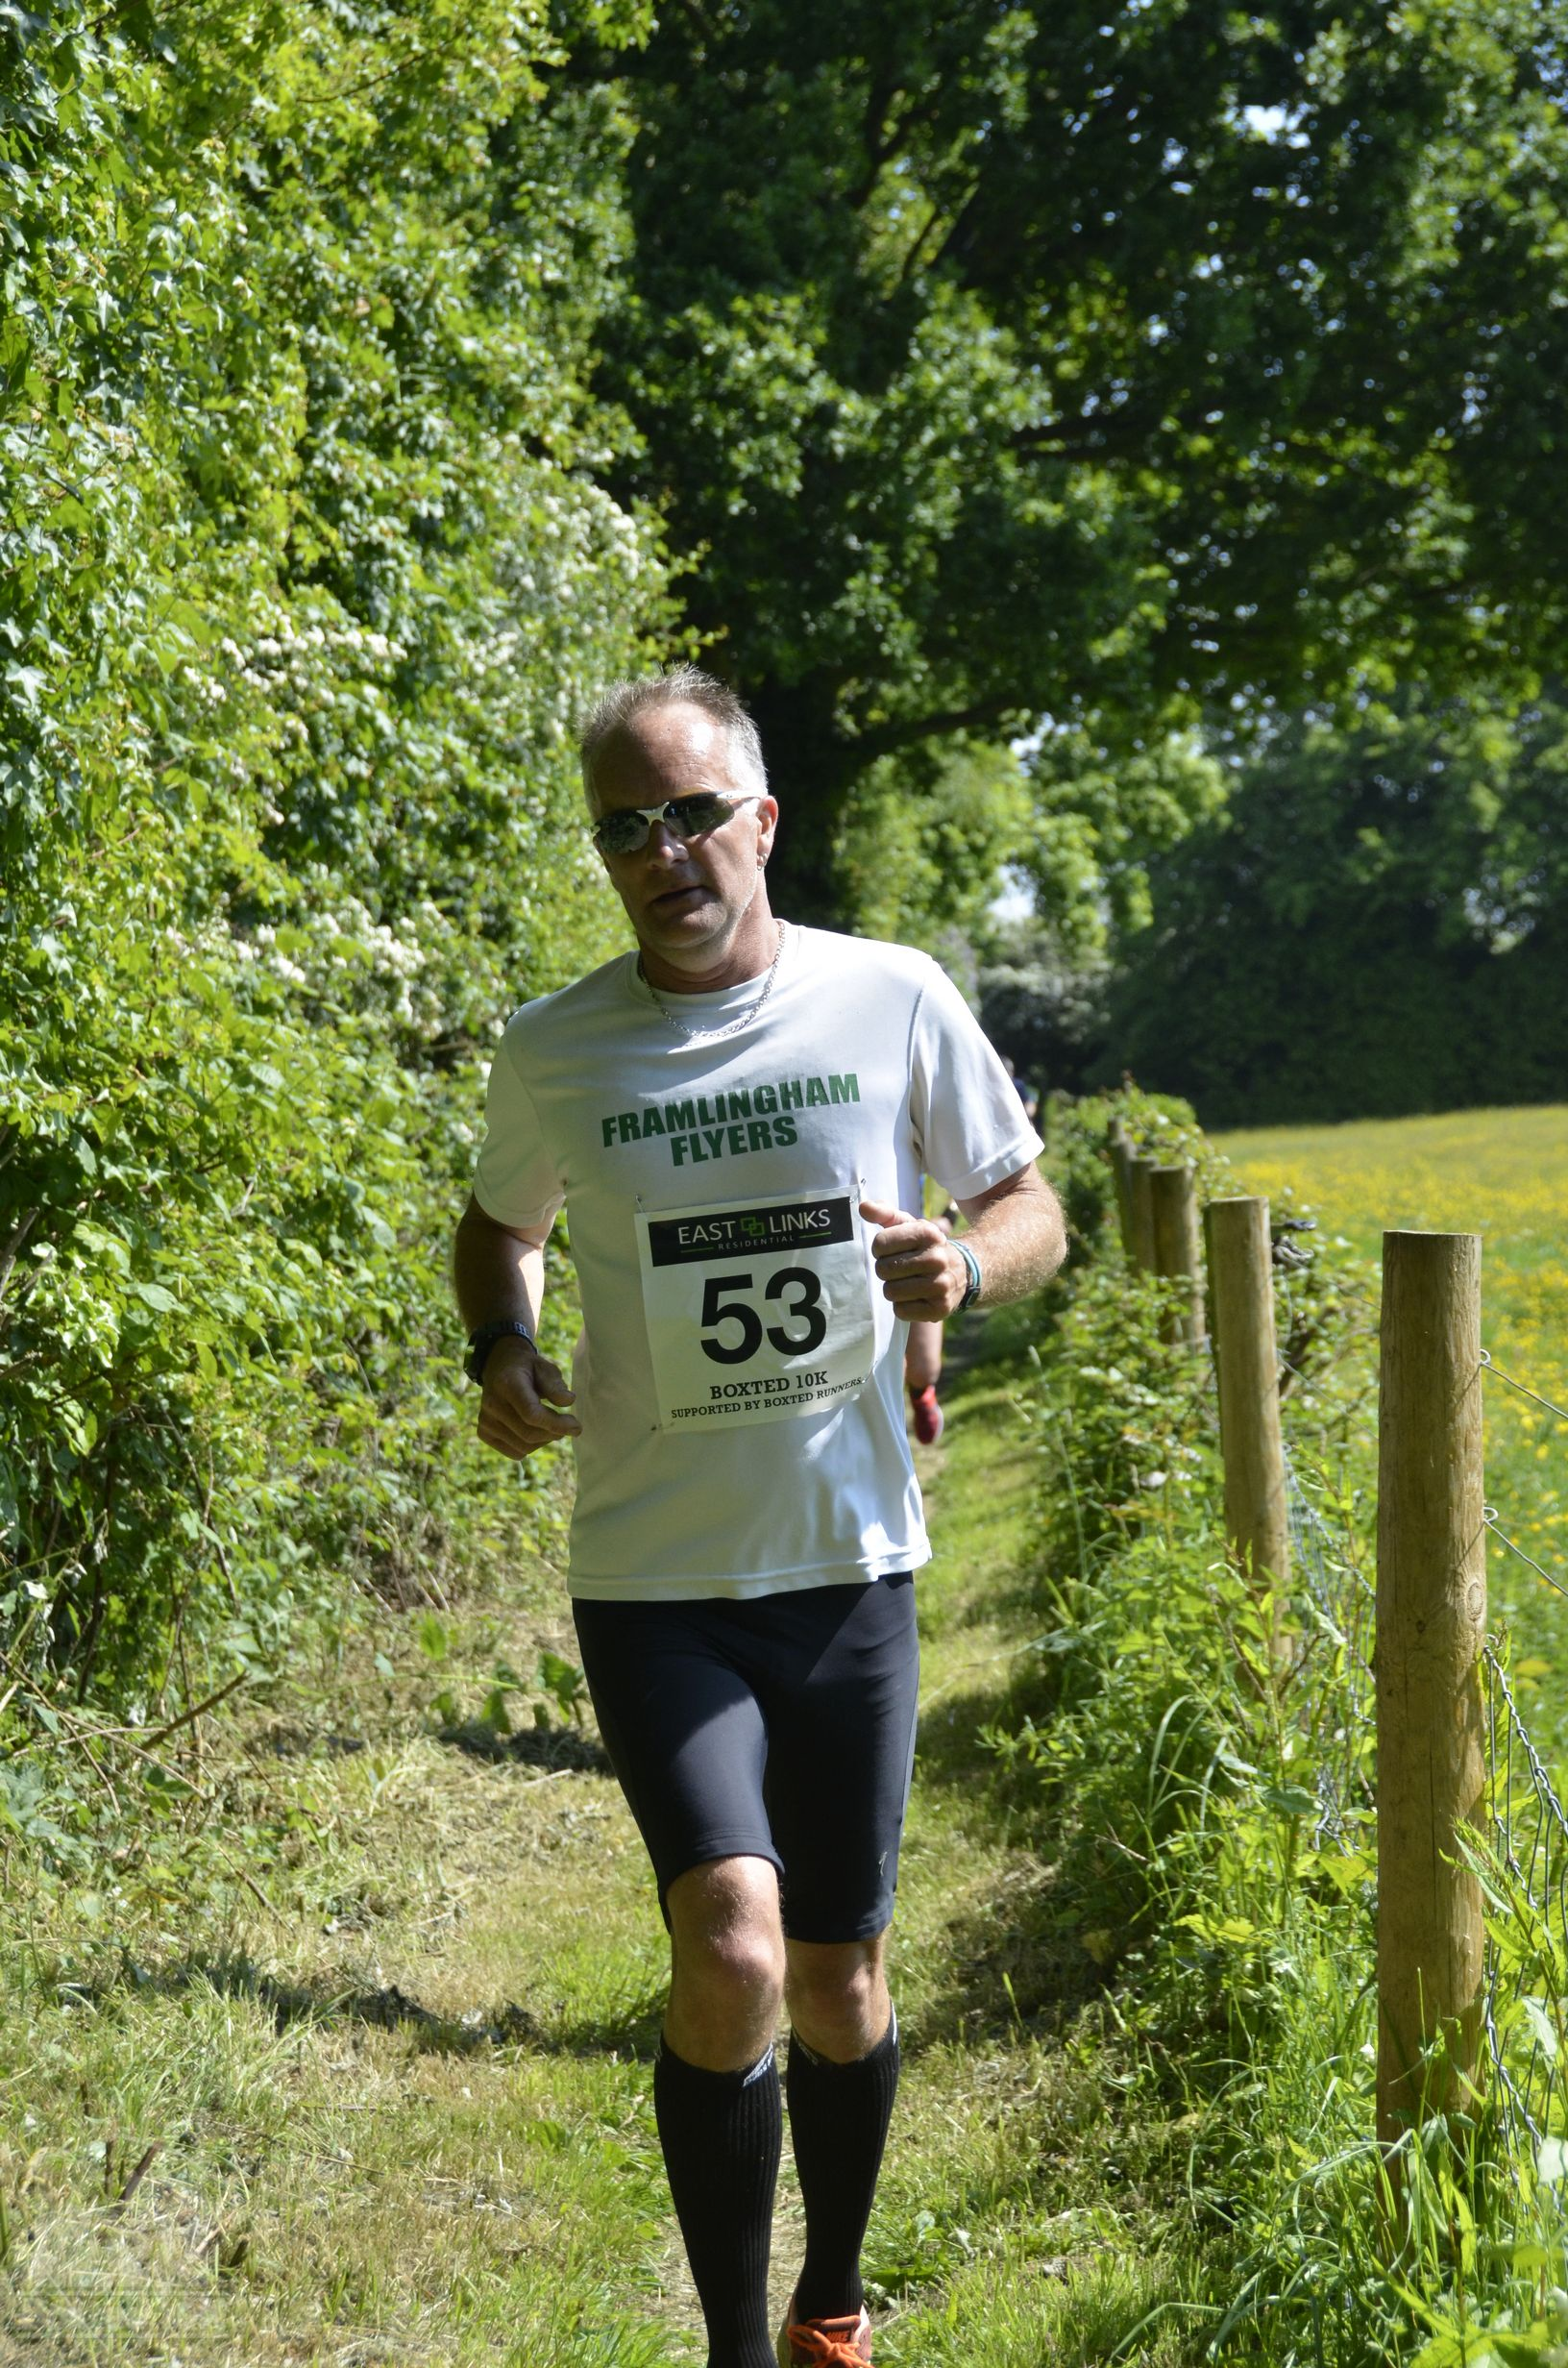 Boxted10k-00174